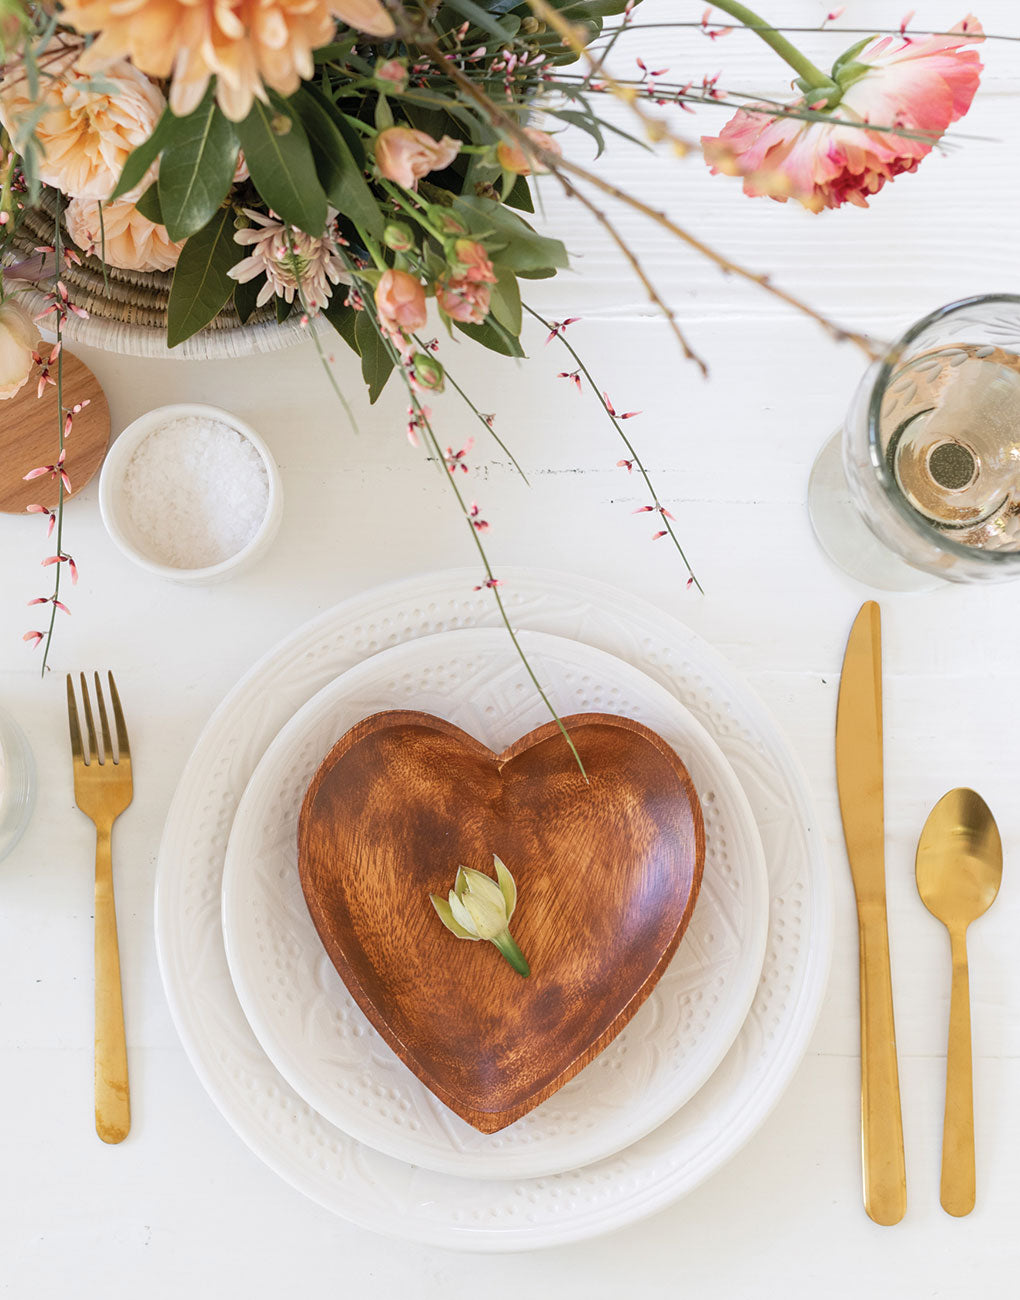 Acacia Wood Heart Tray | The Little Market